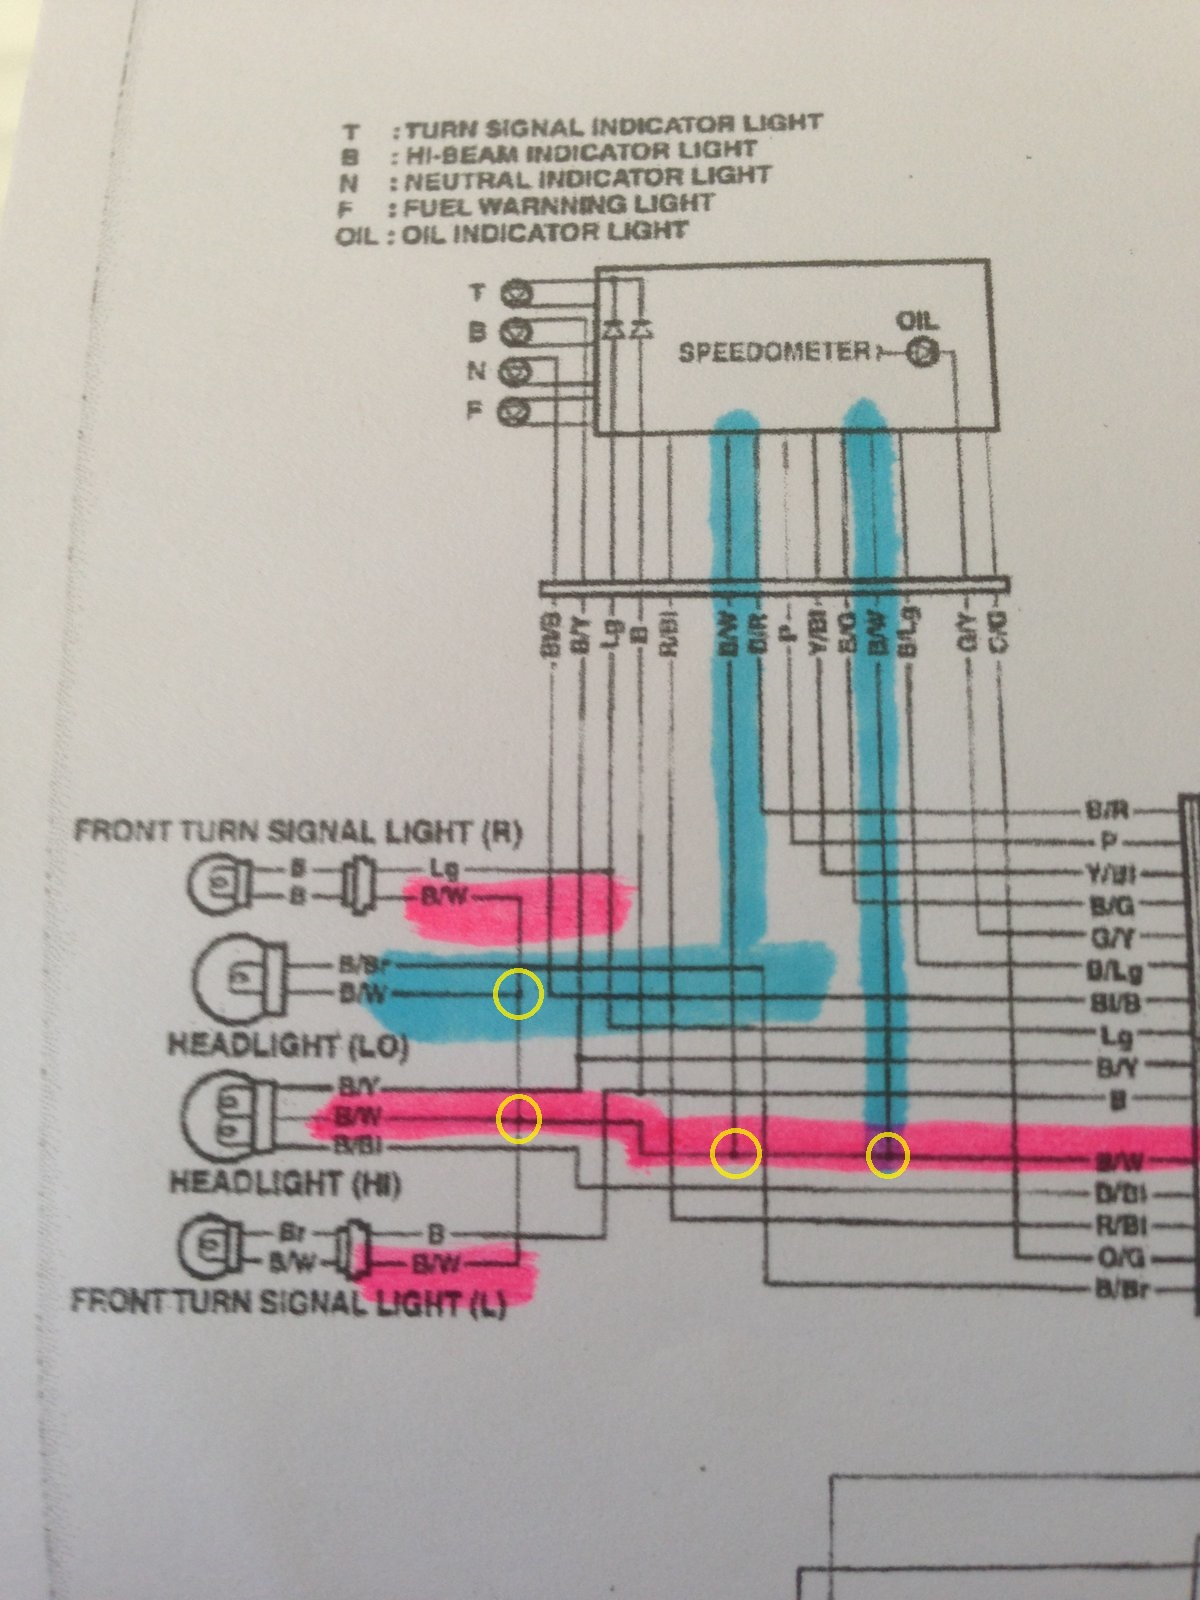 2006 gsxr 100 wiring schematics electrical question: redundant ground - 2005 gsxr600 ... 2006 gsxr speedo wiring diagram